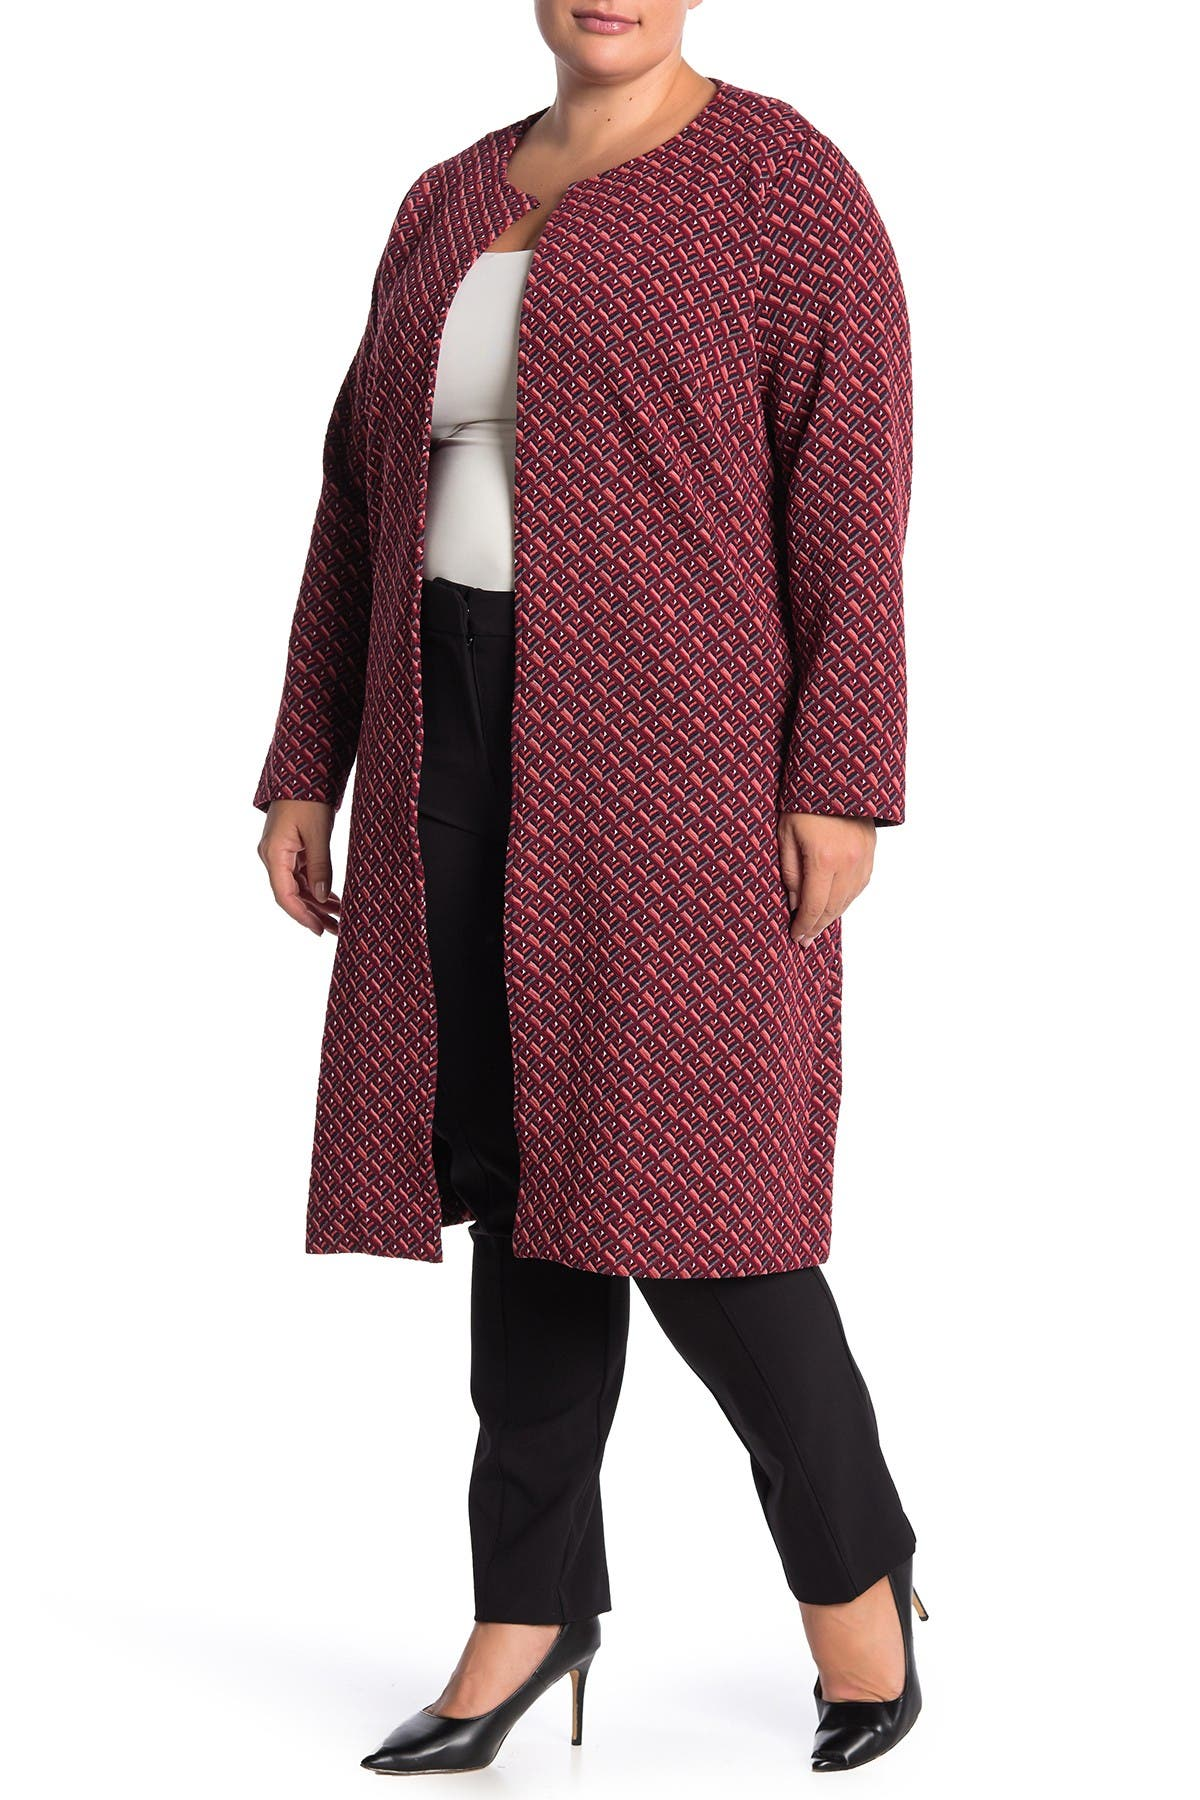 Image of Leota Cora Open Front Duster Jacket